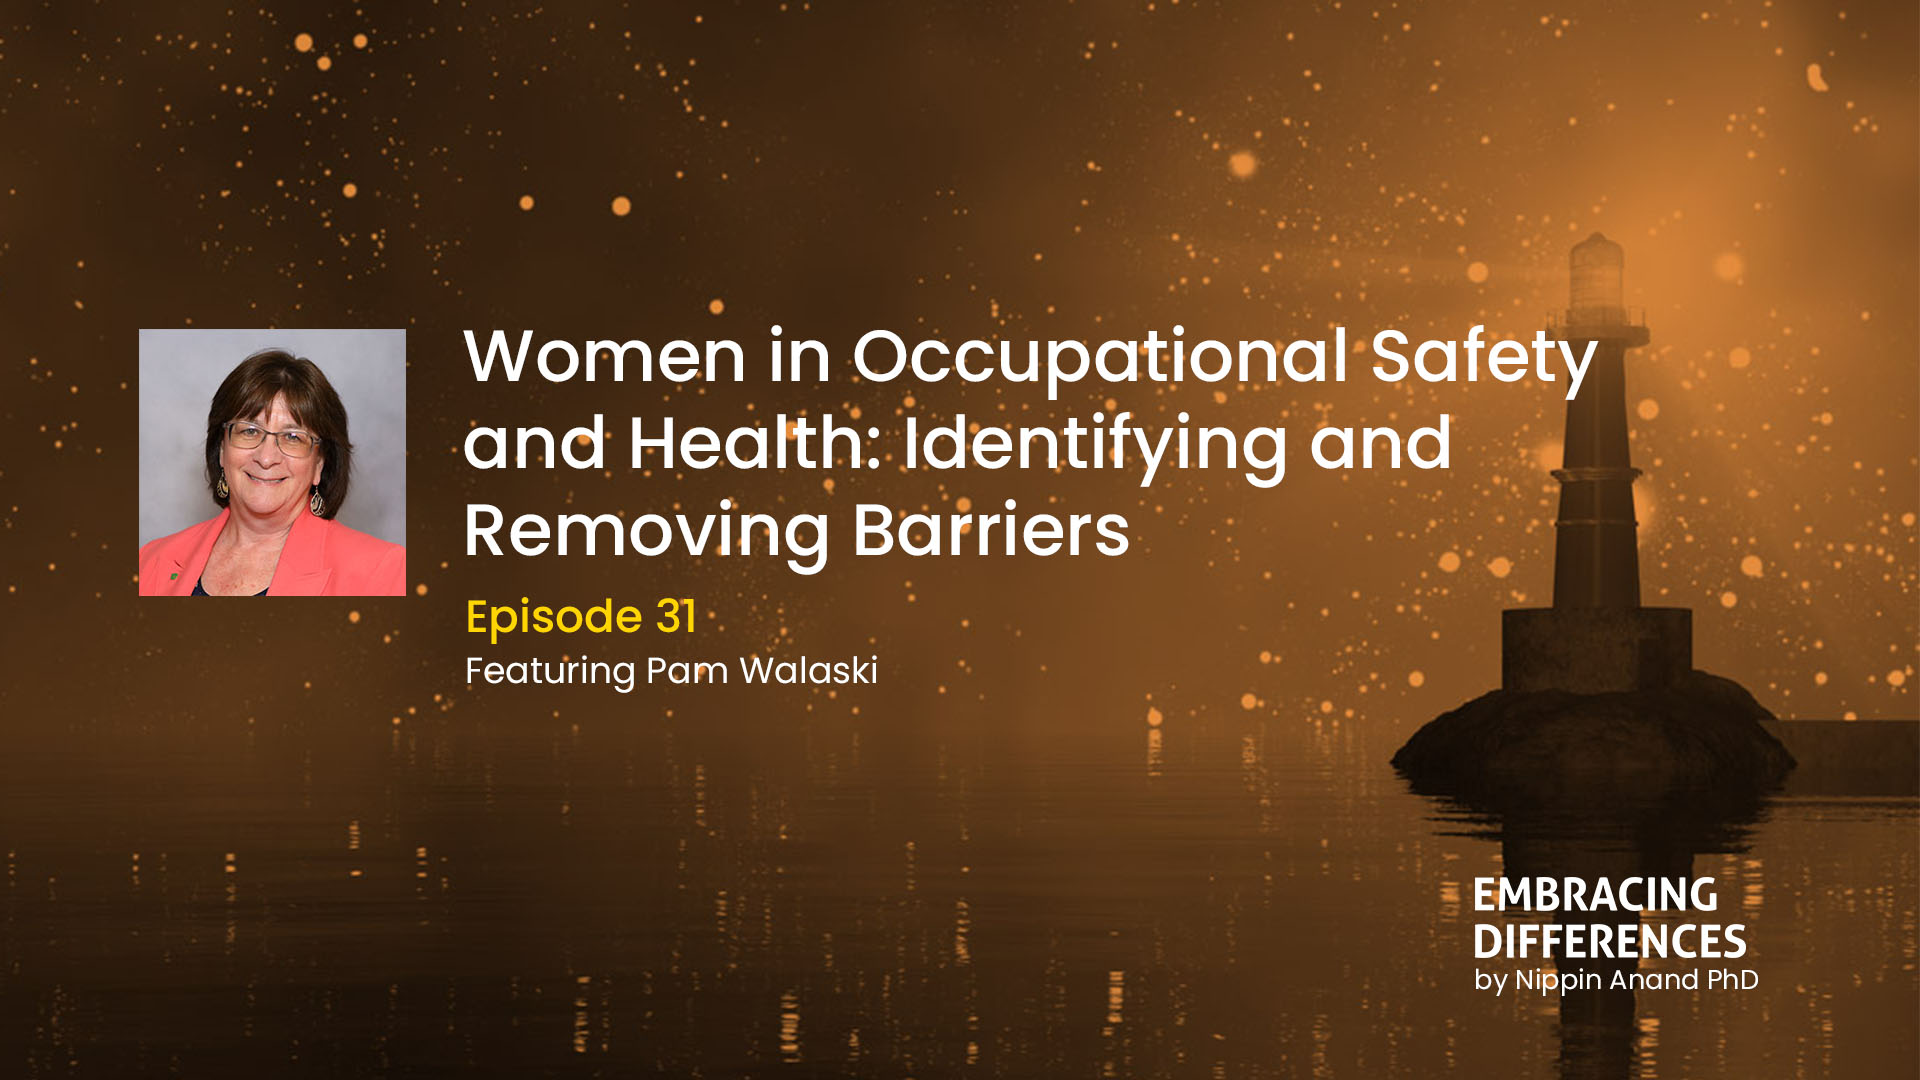 Women in Occupational Safety and Health: Identifying and Removing Barriers